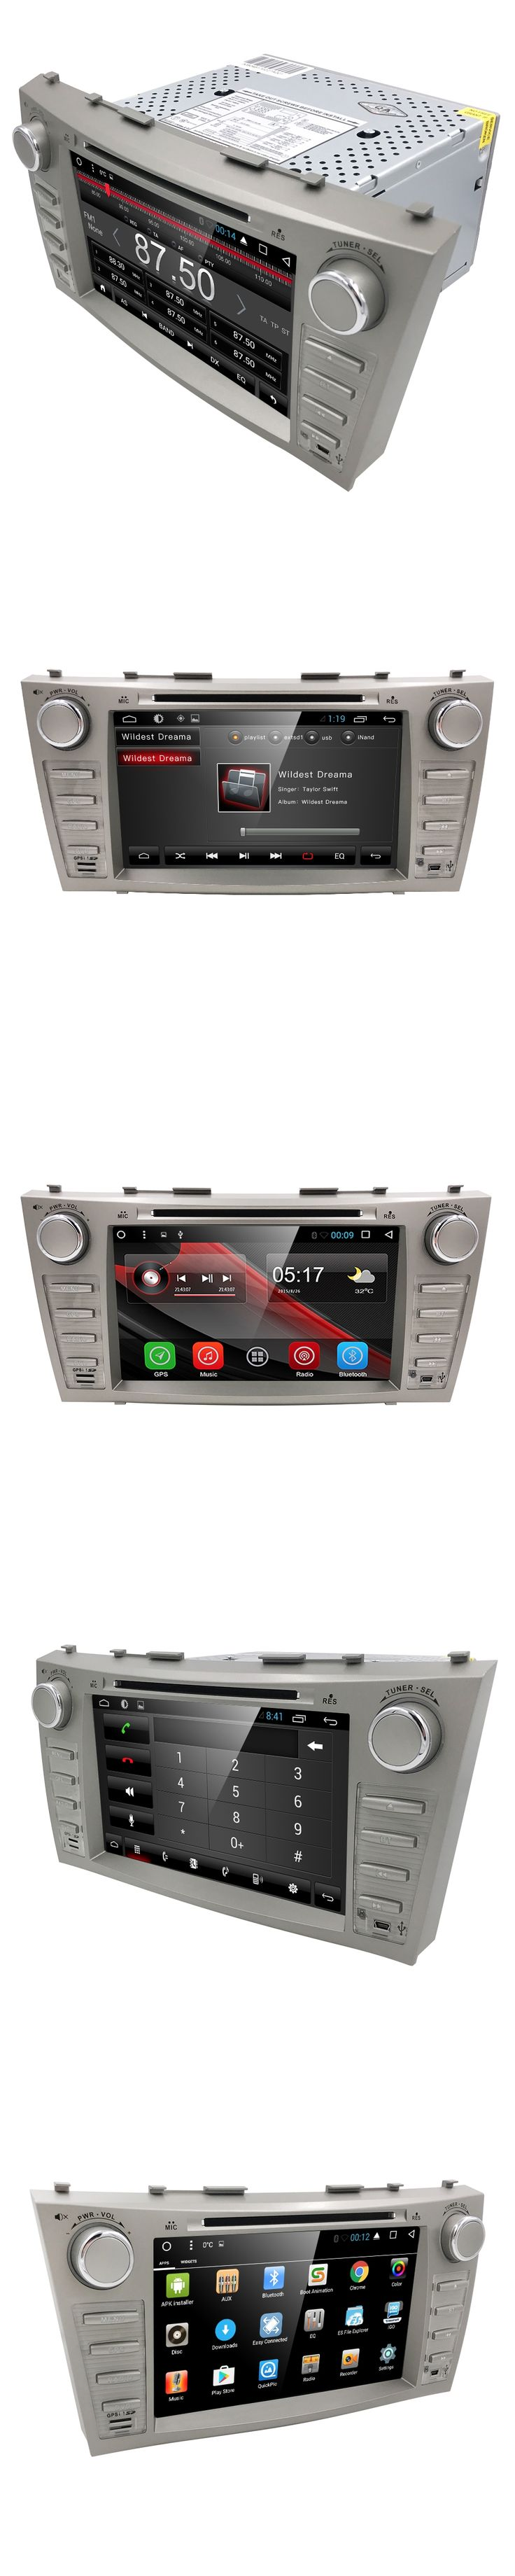 8 Inch Android 5.1.1 Car DVD Player GPS Navigation System for Toyota Camry 2007 2008 2009 2010 2011 (DTV DAB+ Optional)